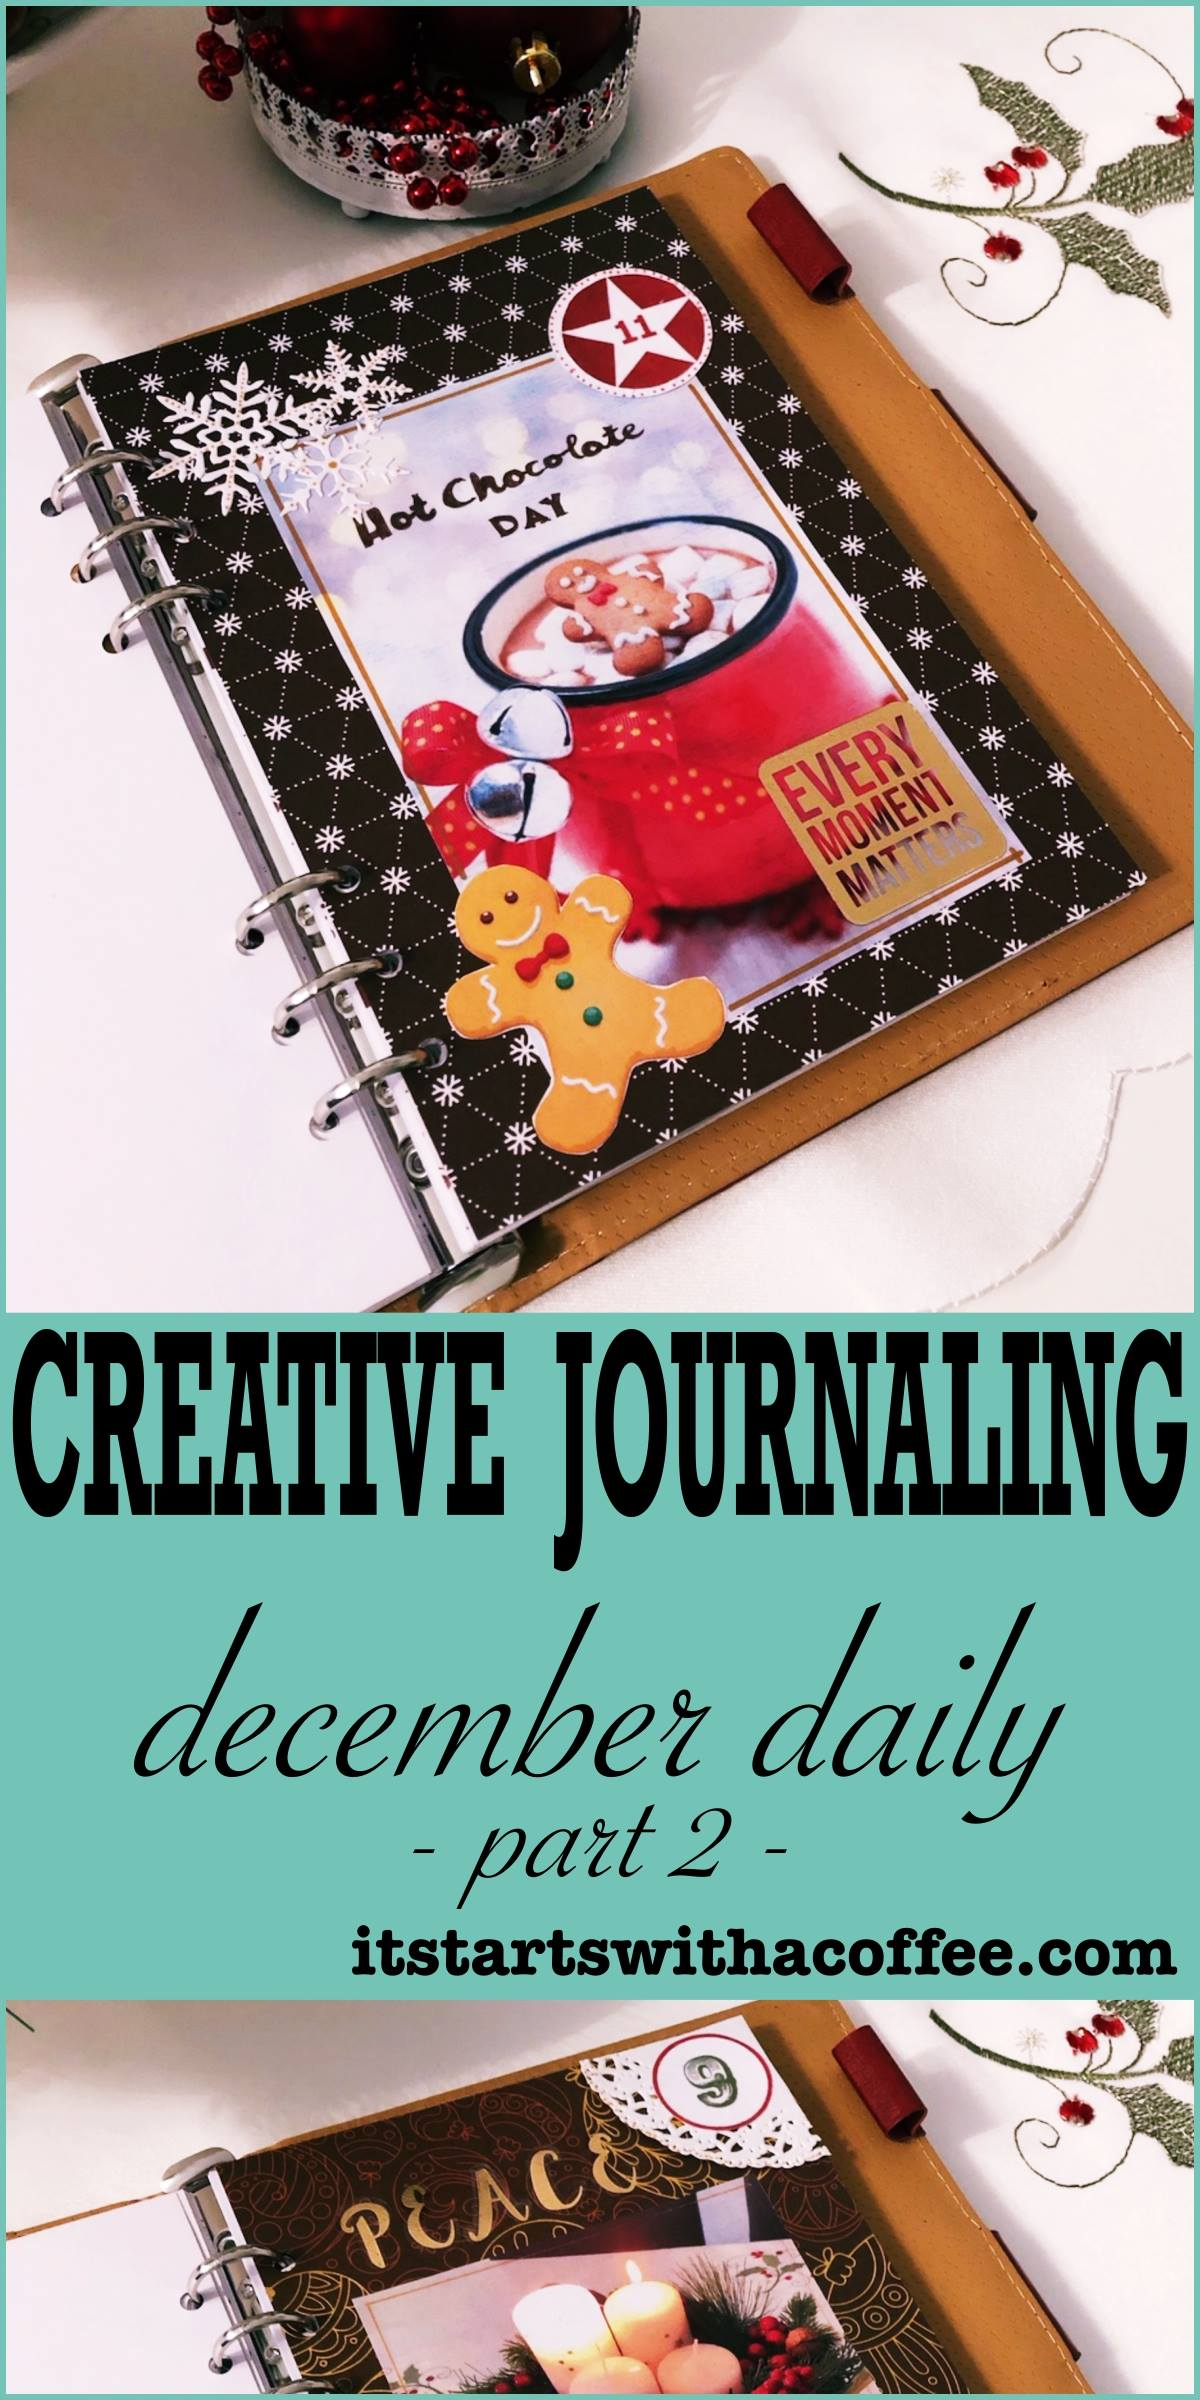 Creative journaling - December daily memories part 2 - itstartswithacoffee.com #creativejournaling #journaling #daily #december #planner #memories